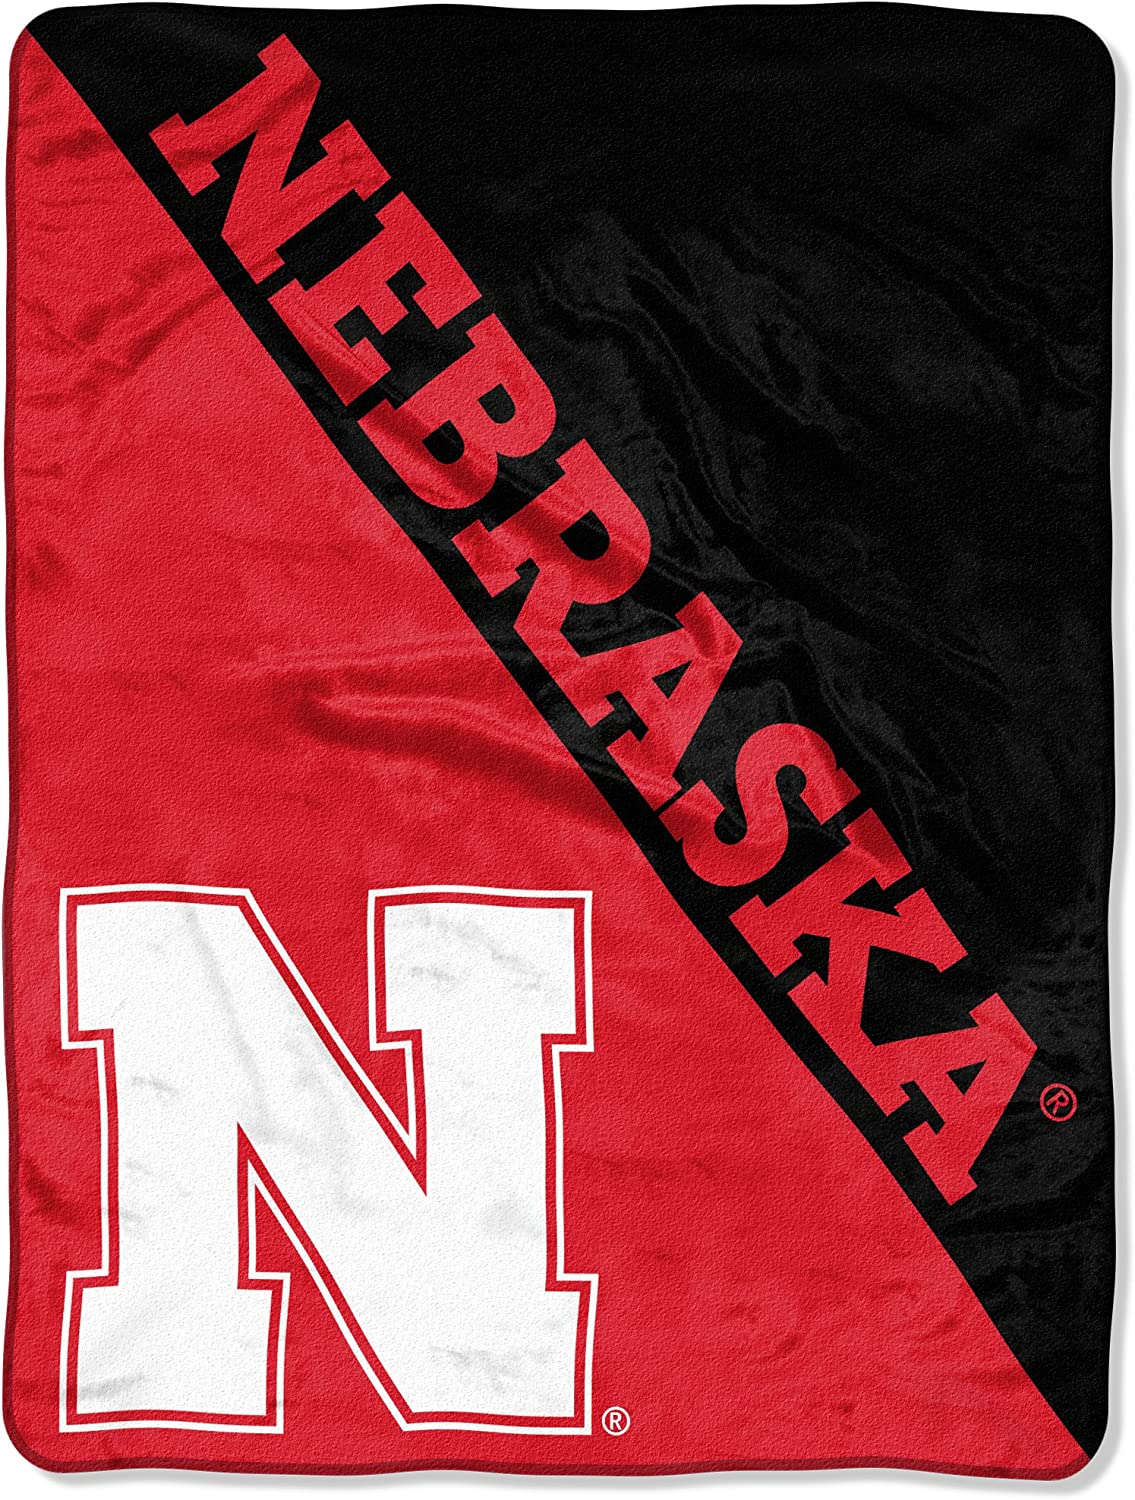 """Officially Licensed NCAA """"Halftone"""" Micro Raschel Throw Blanket, 46"""" x 60"""", Multi Color"""